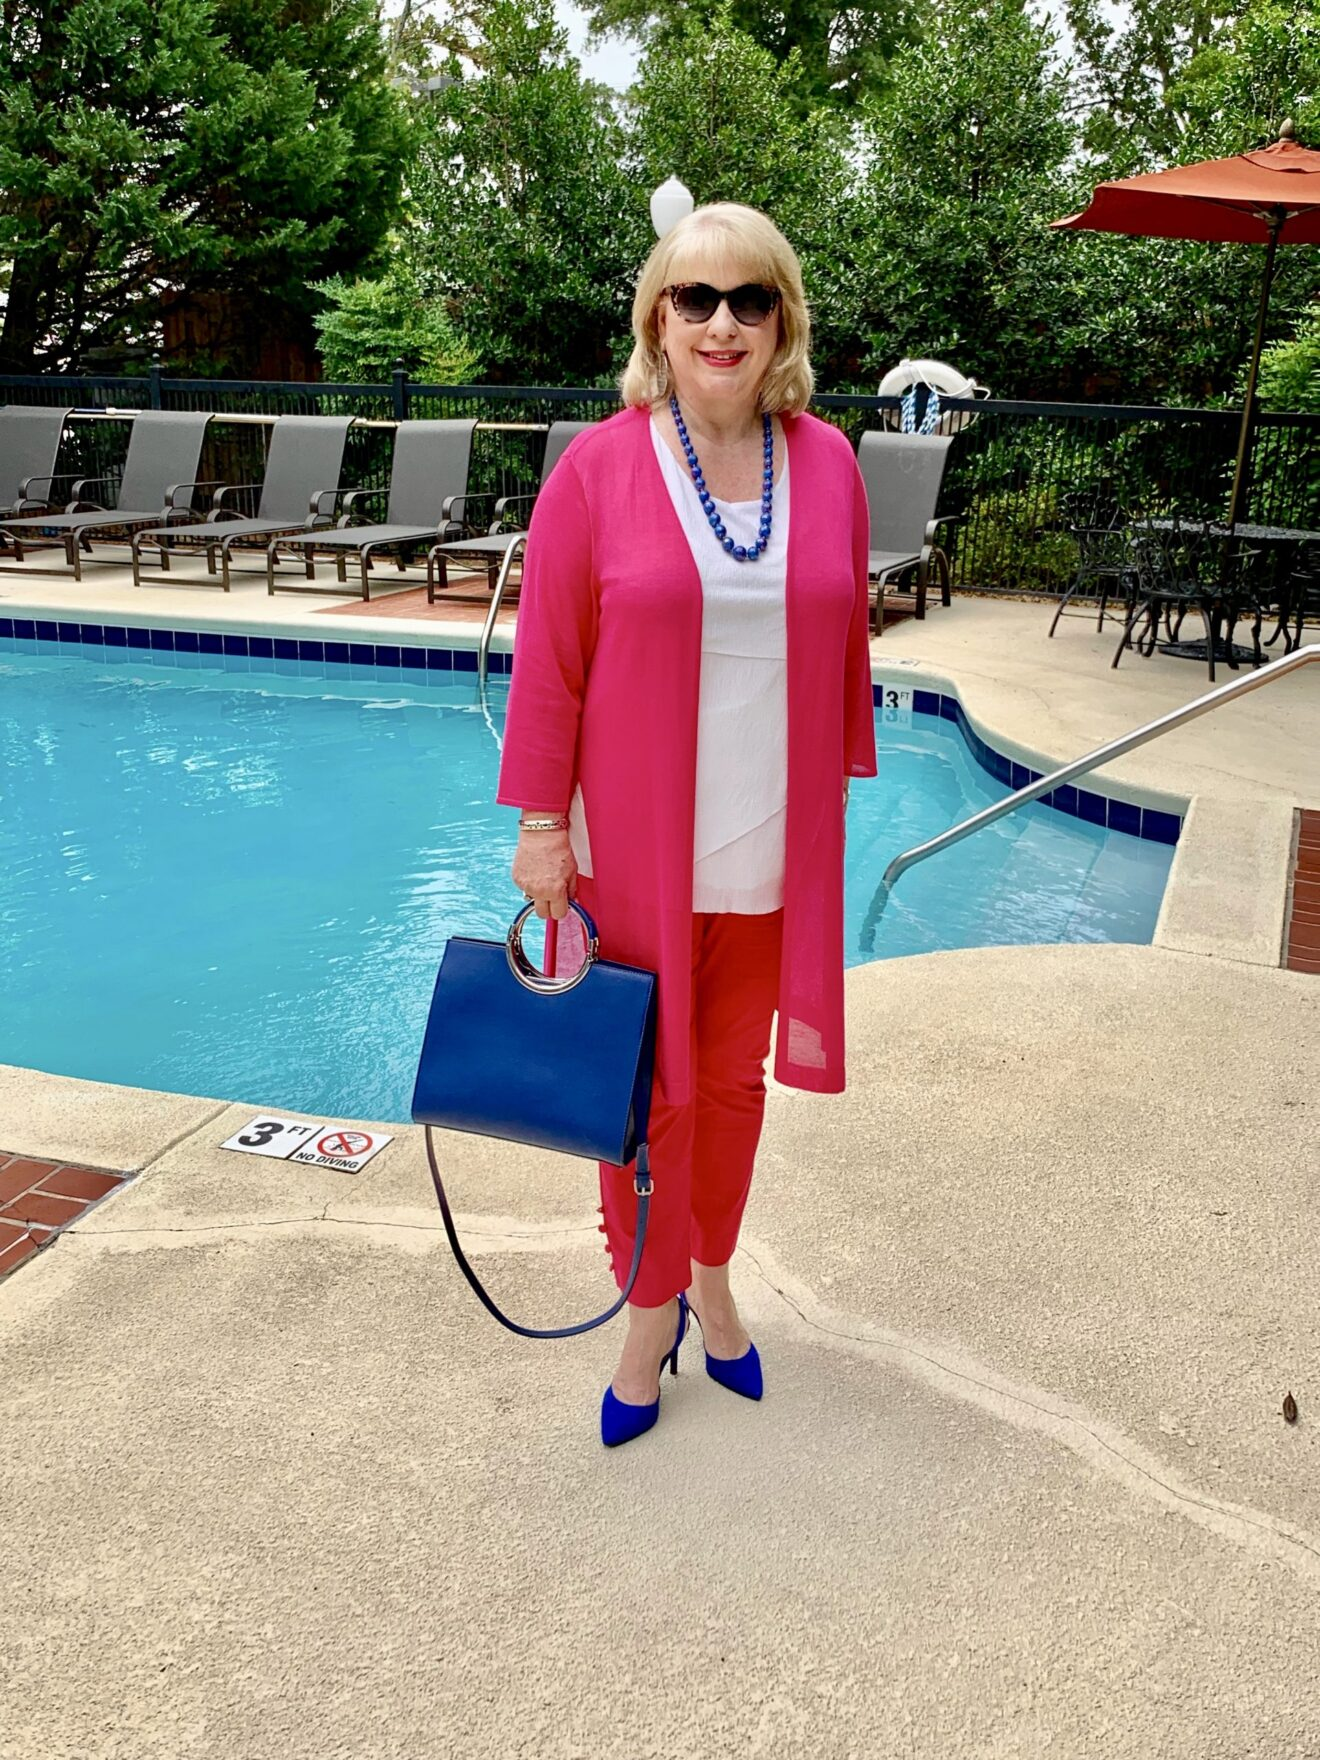 Style Story Interview Classy Colorful Confidence @StyleShennanigans Shannon Holmes Fashion Over 50 60 Confident Hot Pink and Cobalt Blue Outfit with Sheer Duster Story Behind The Cloth scaled